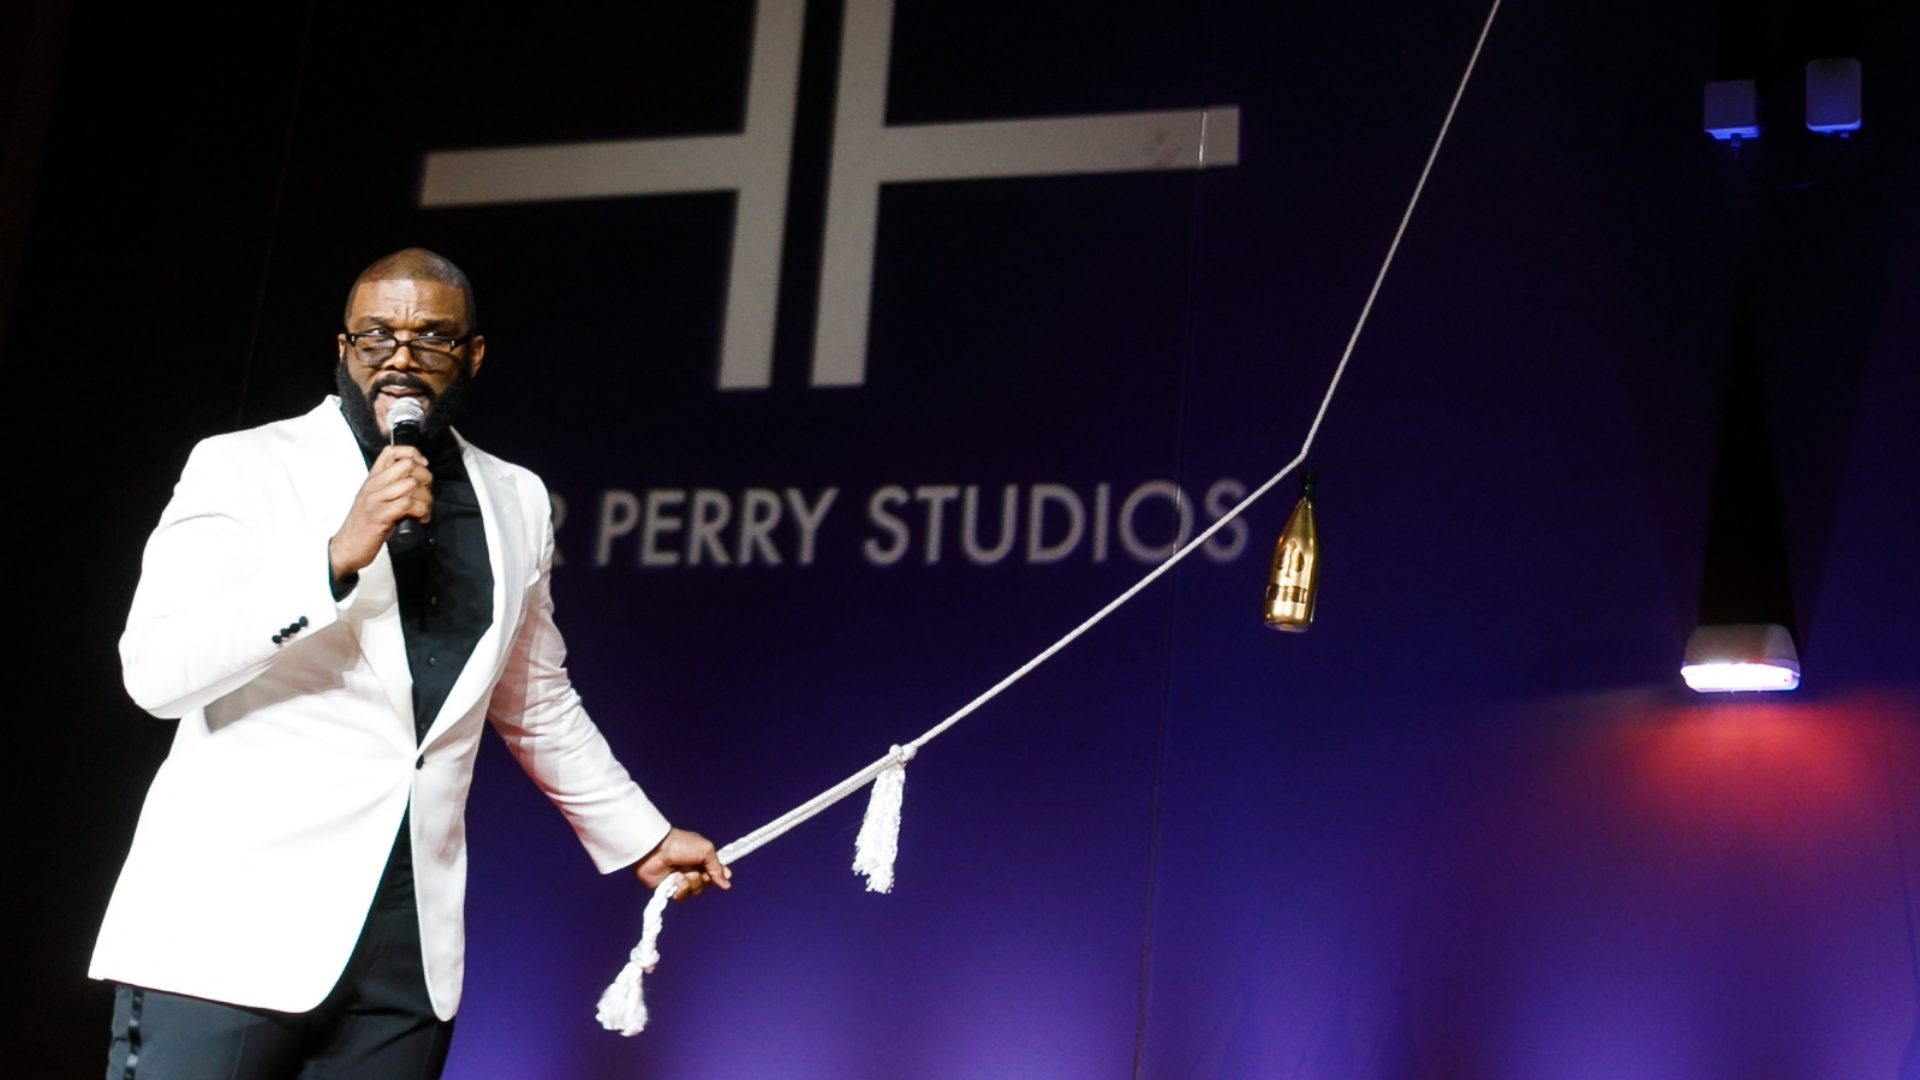 Tyler Perry Reveals He Wants To Build A Shelter For Trafficked Girls, Boys And Battered Women